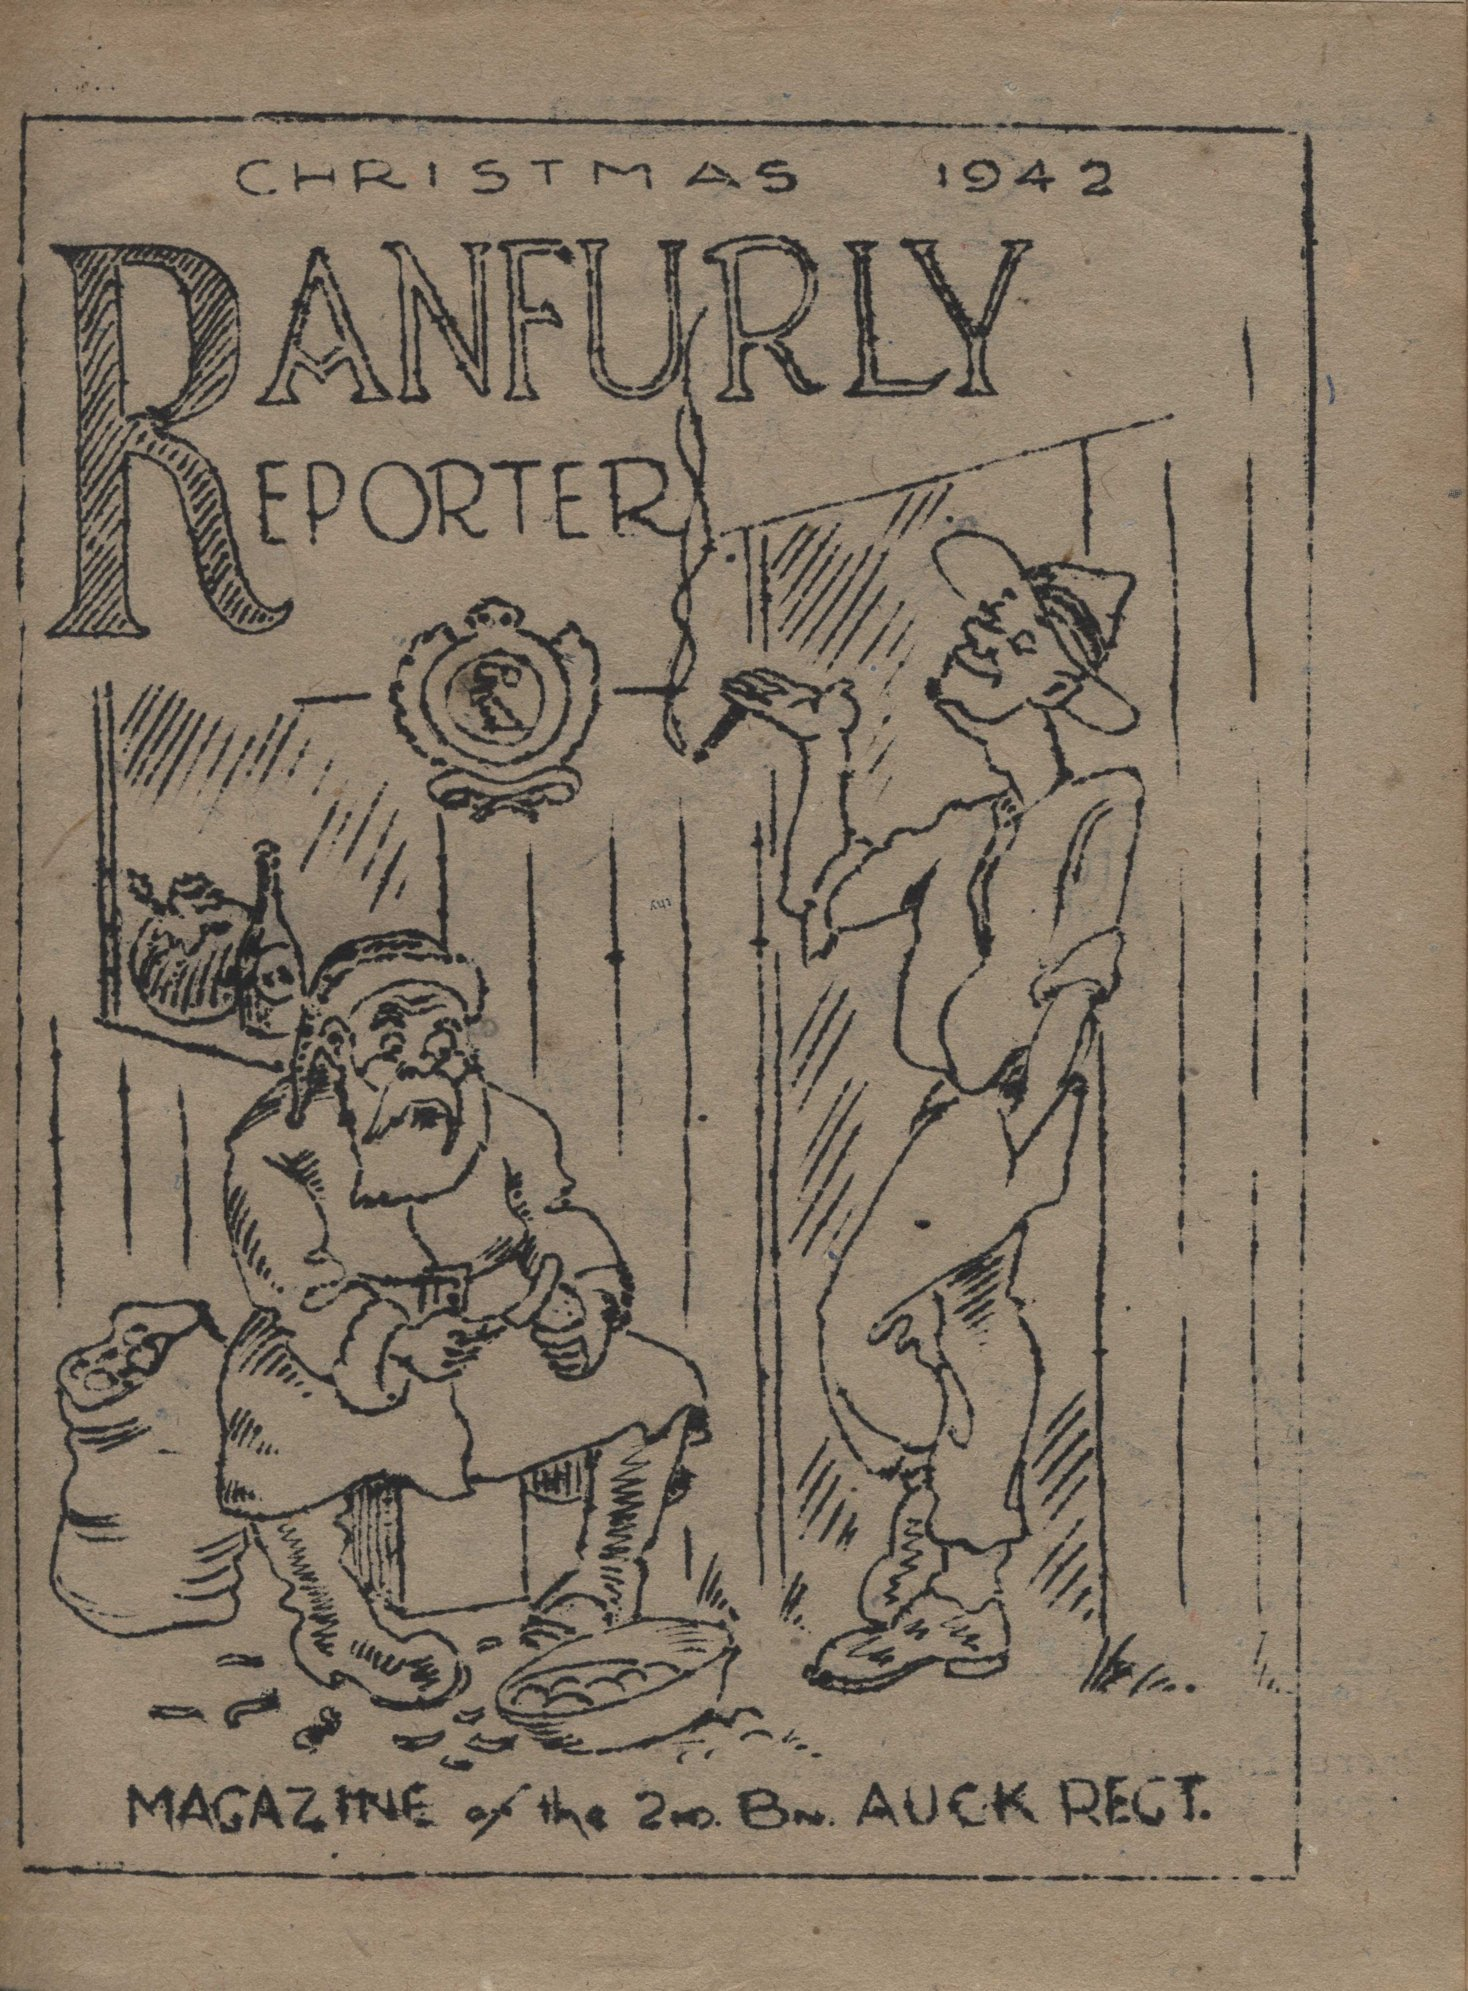 Ranfurly Reporter: Magazine of the 2nd Battalion, Auckland Regiment, Christmas 1942.